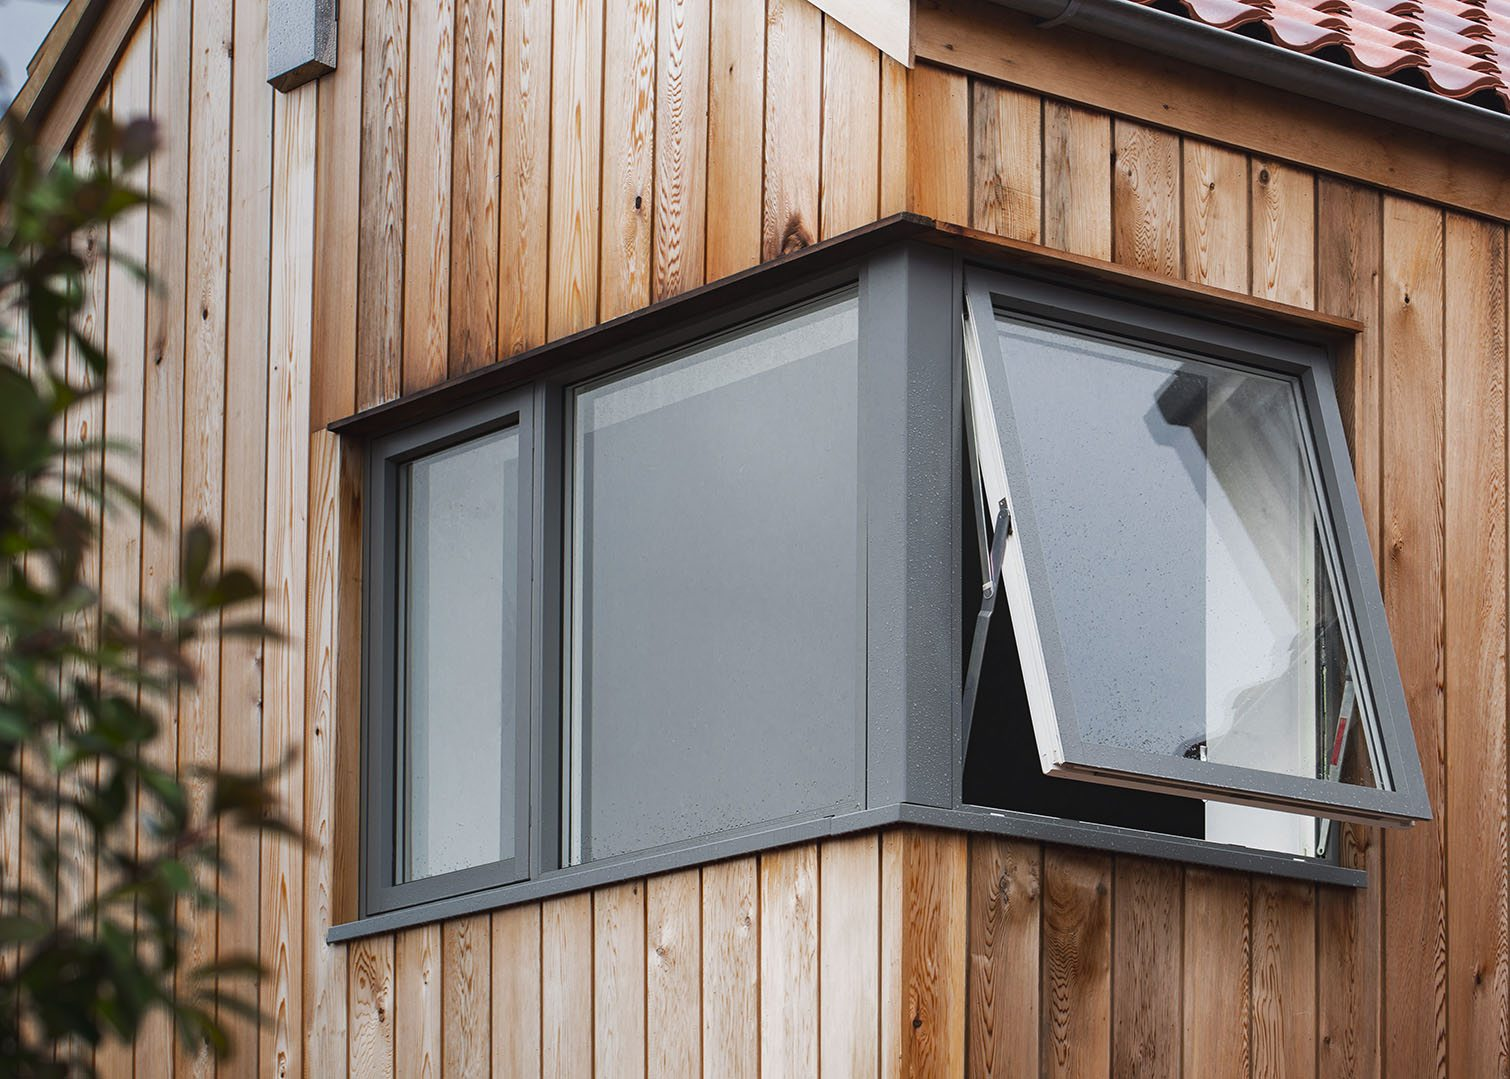 Westcoast Windows supply Swedish composite windows for a new exclusive complex of homes at the Dial House in Norfolk, working with partners Aluminium Clad Windows by TWN